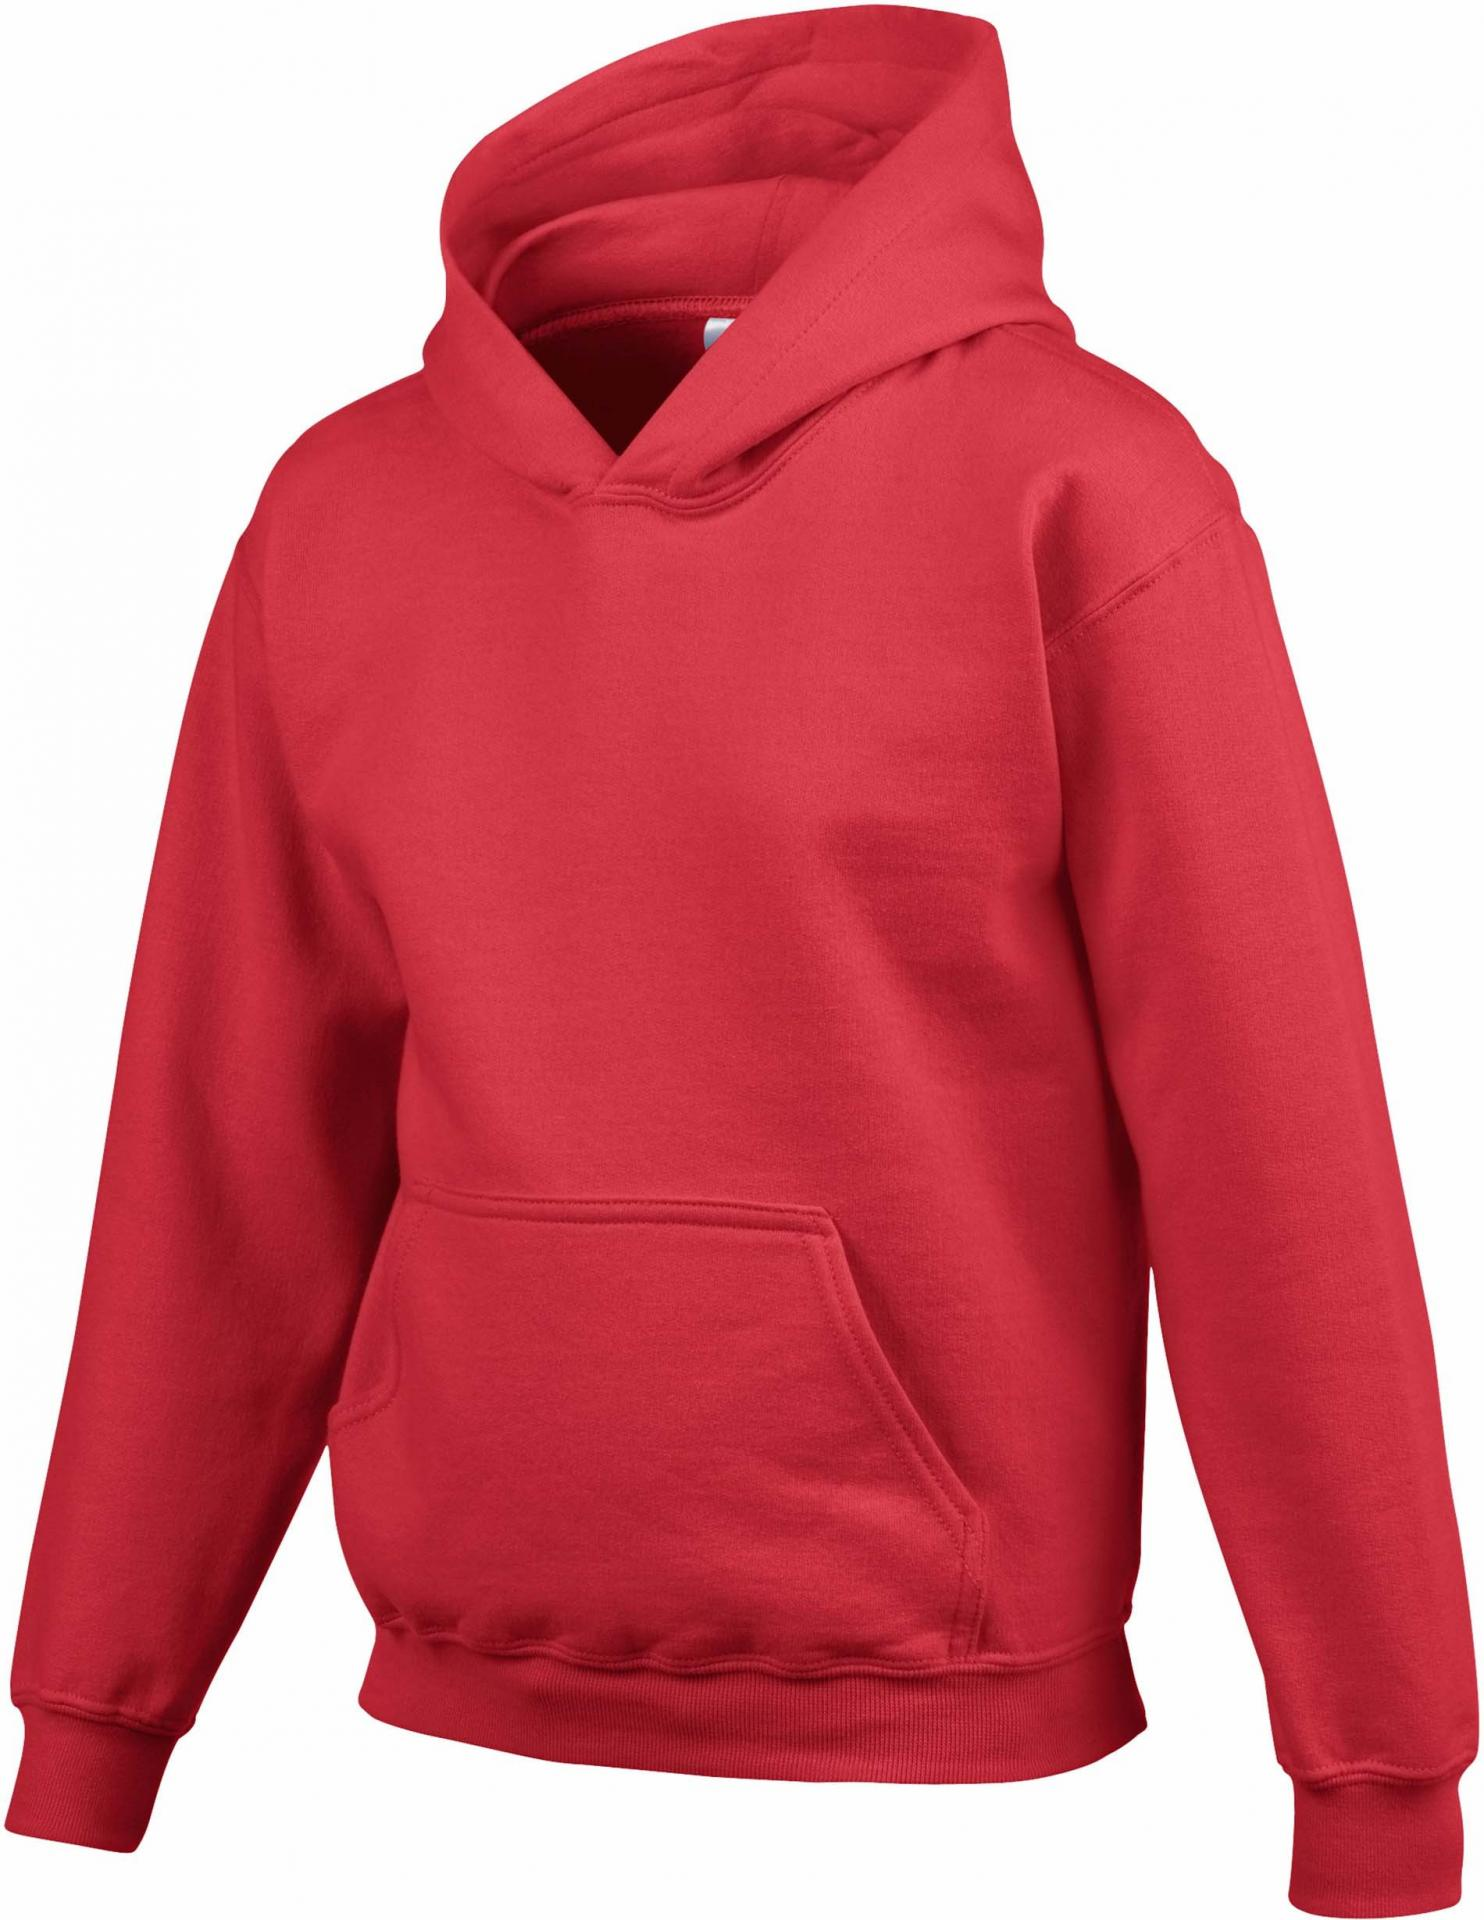 Sweat capuche enfant rouge